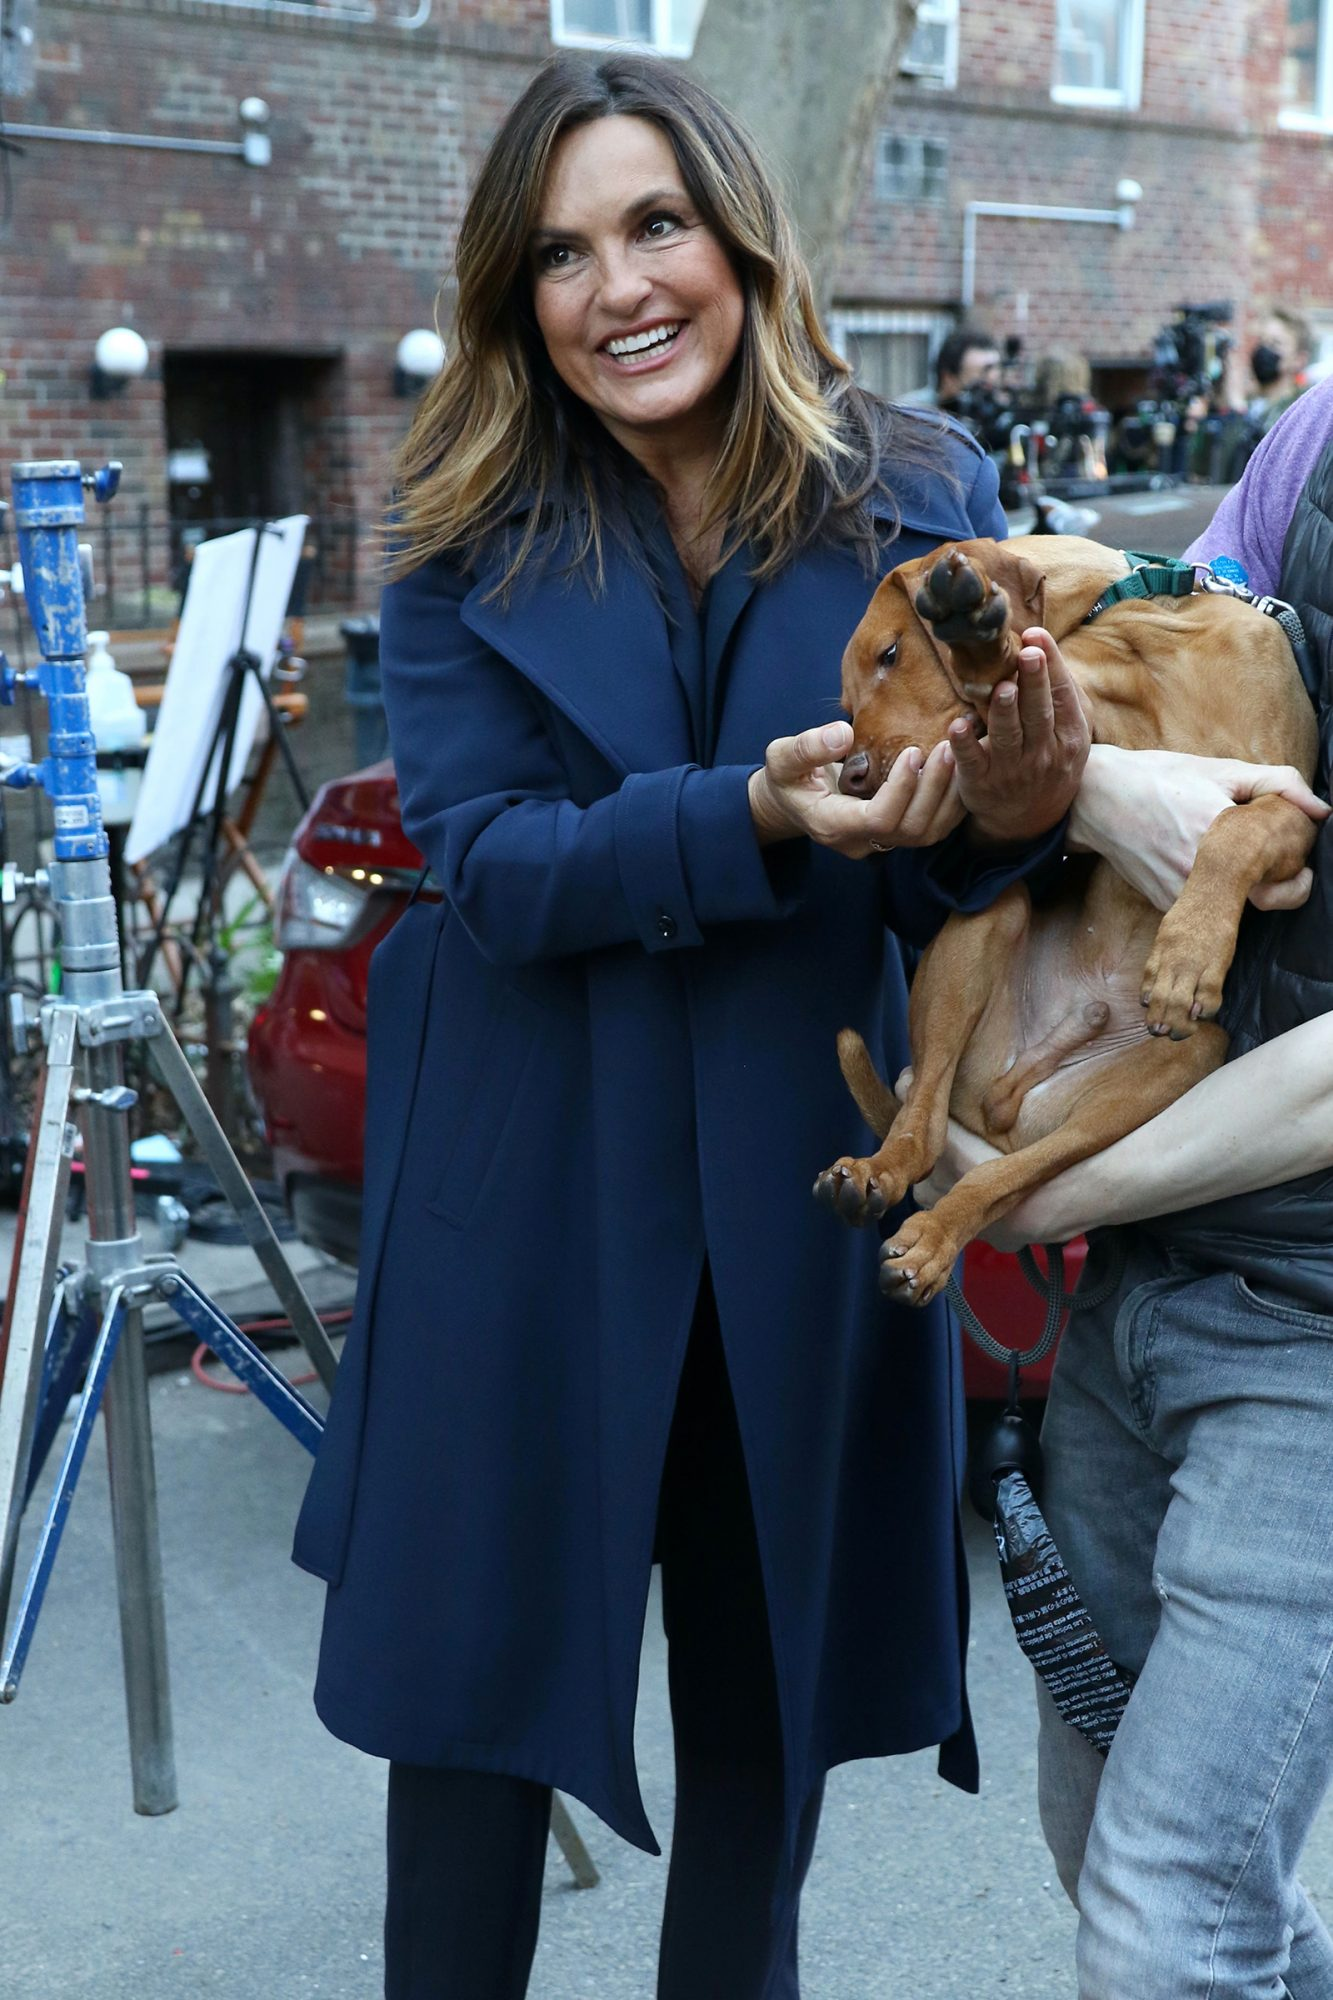 """Mariska Hargitay is seen on the set of """"Law and Order: SVU"""" on April 07, 2021 in New York City"""